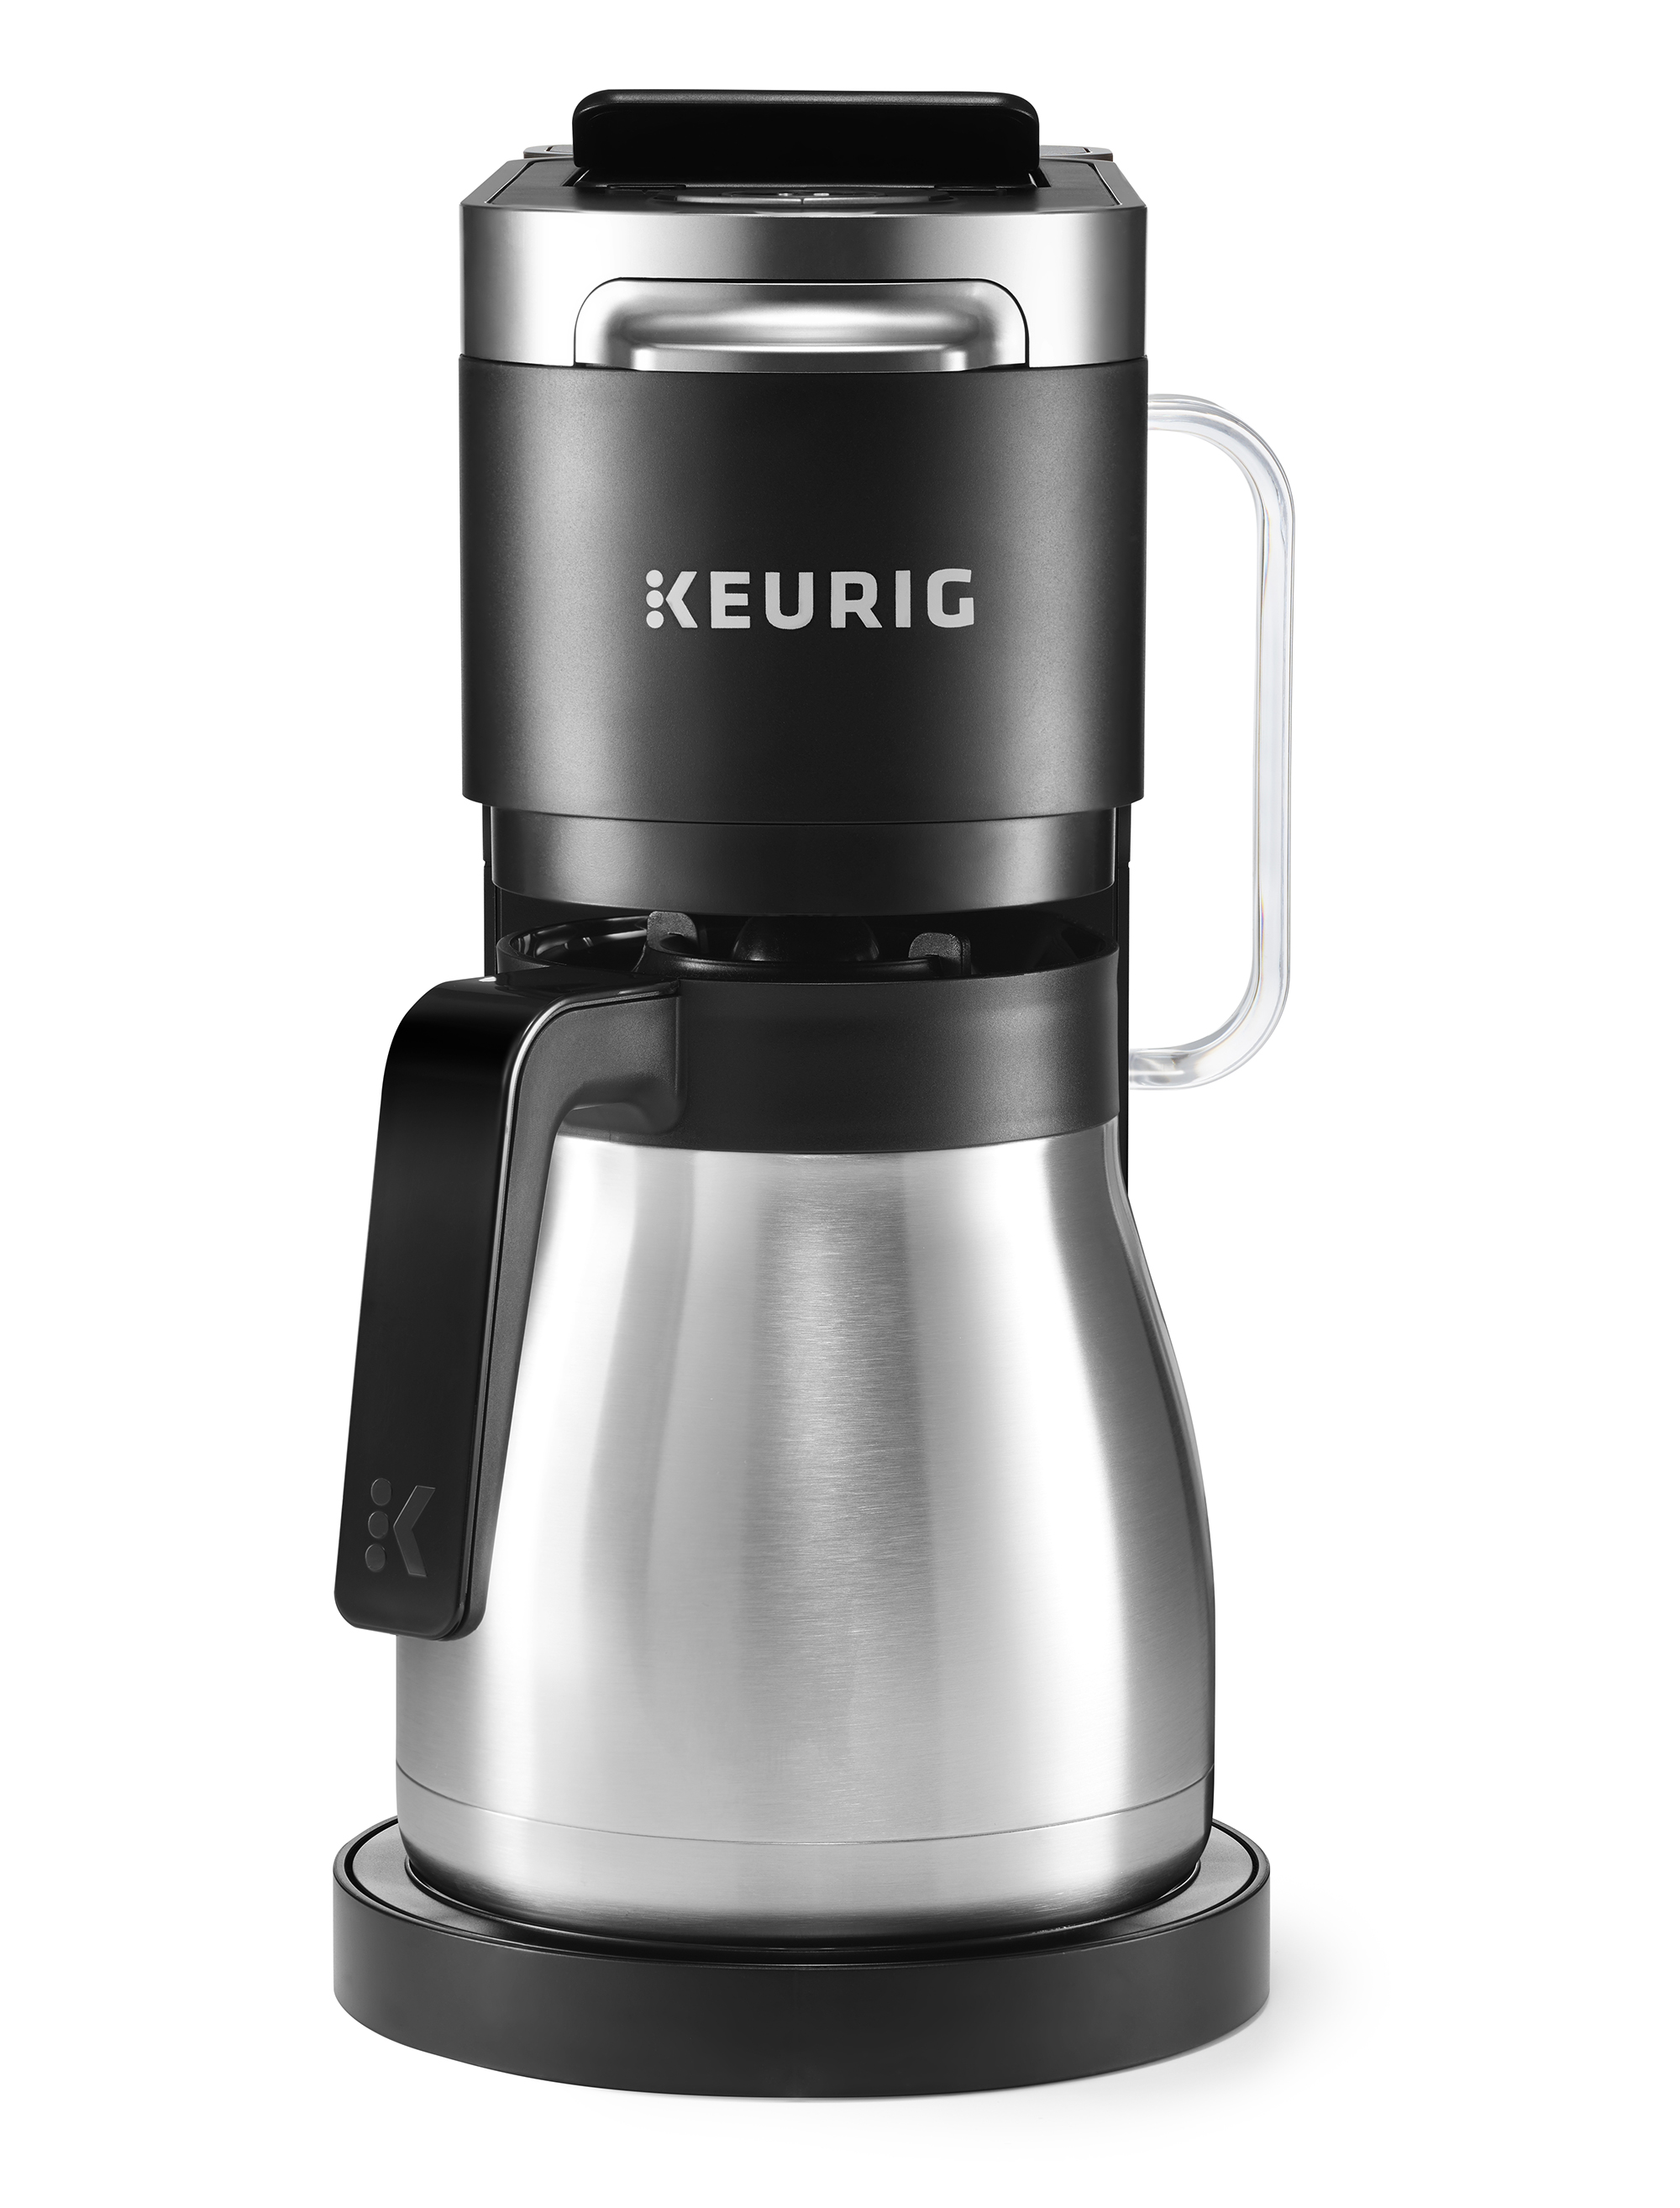 Replacement Parts for Keurig Coffee Makers,K-Cup,Water Filter Holder,Pods,Carafe